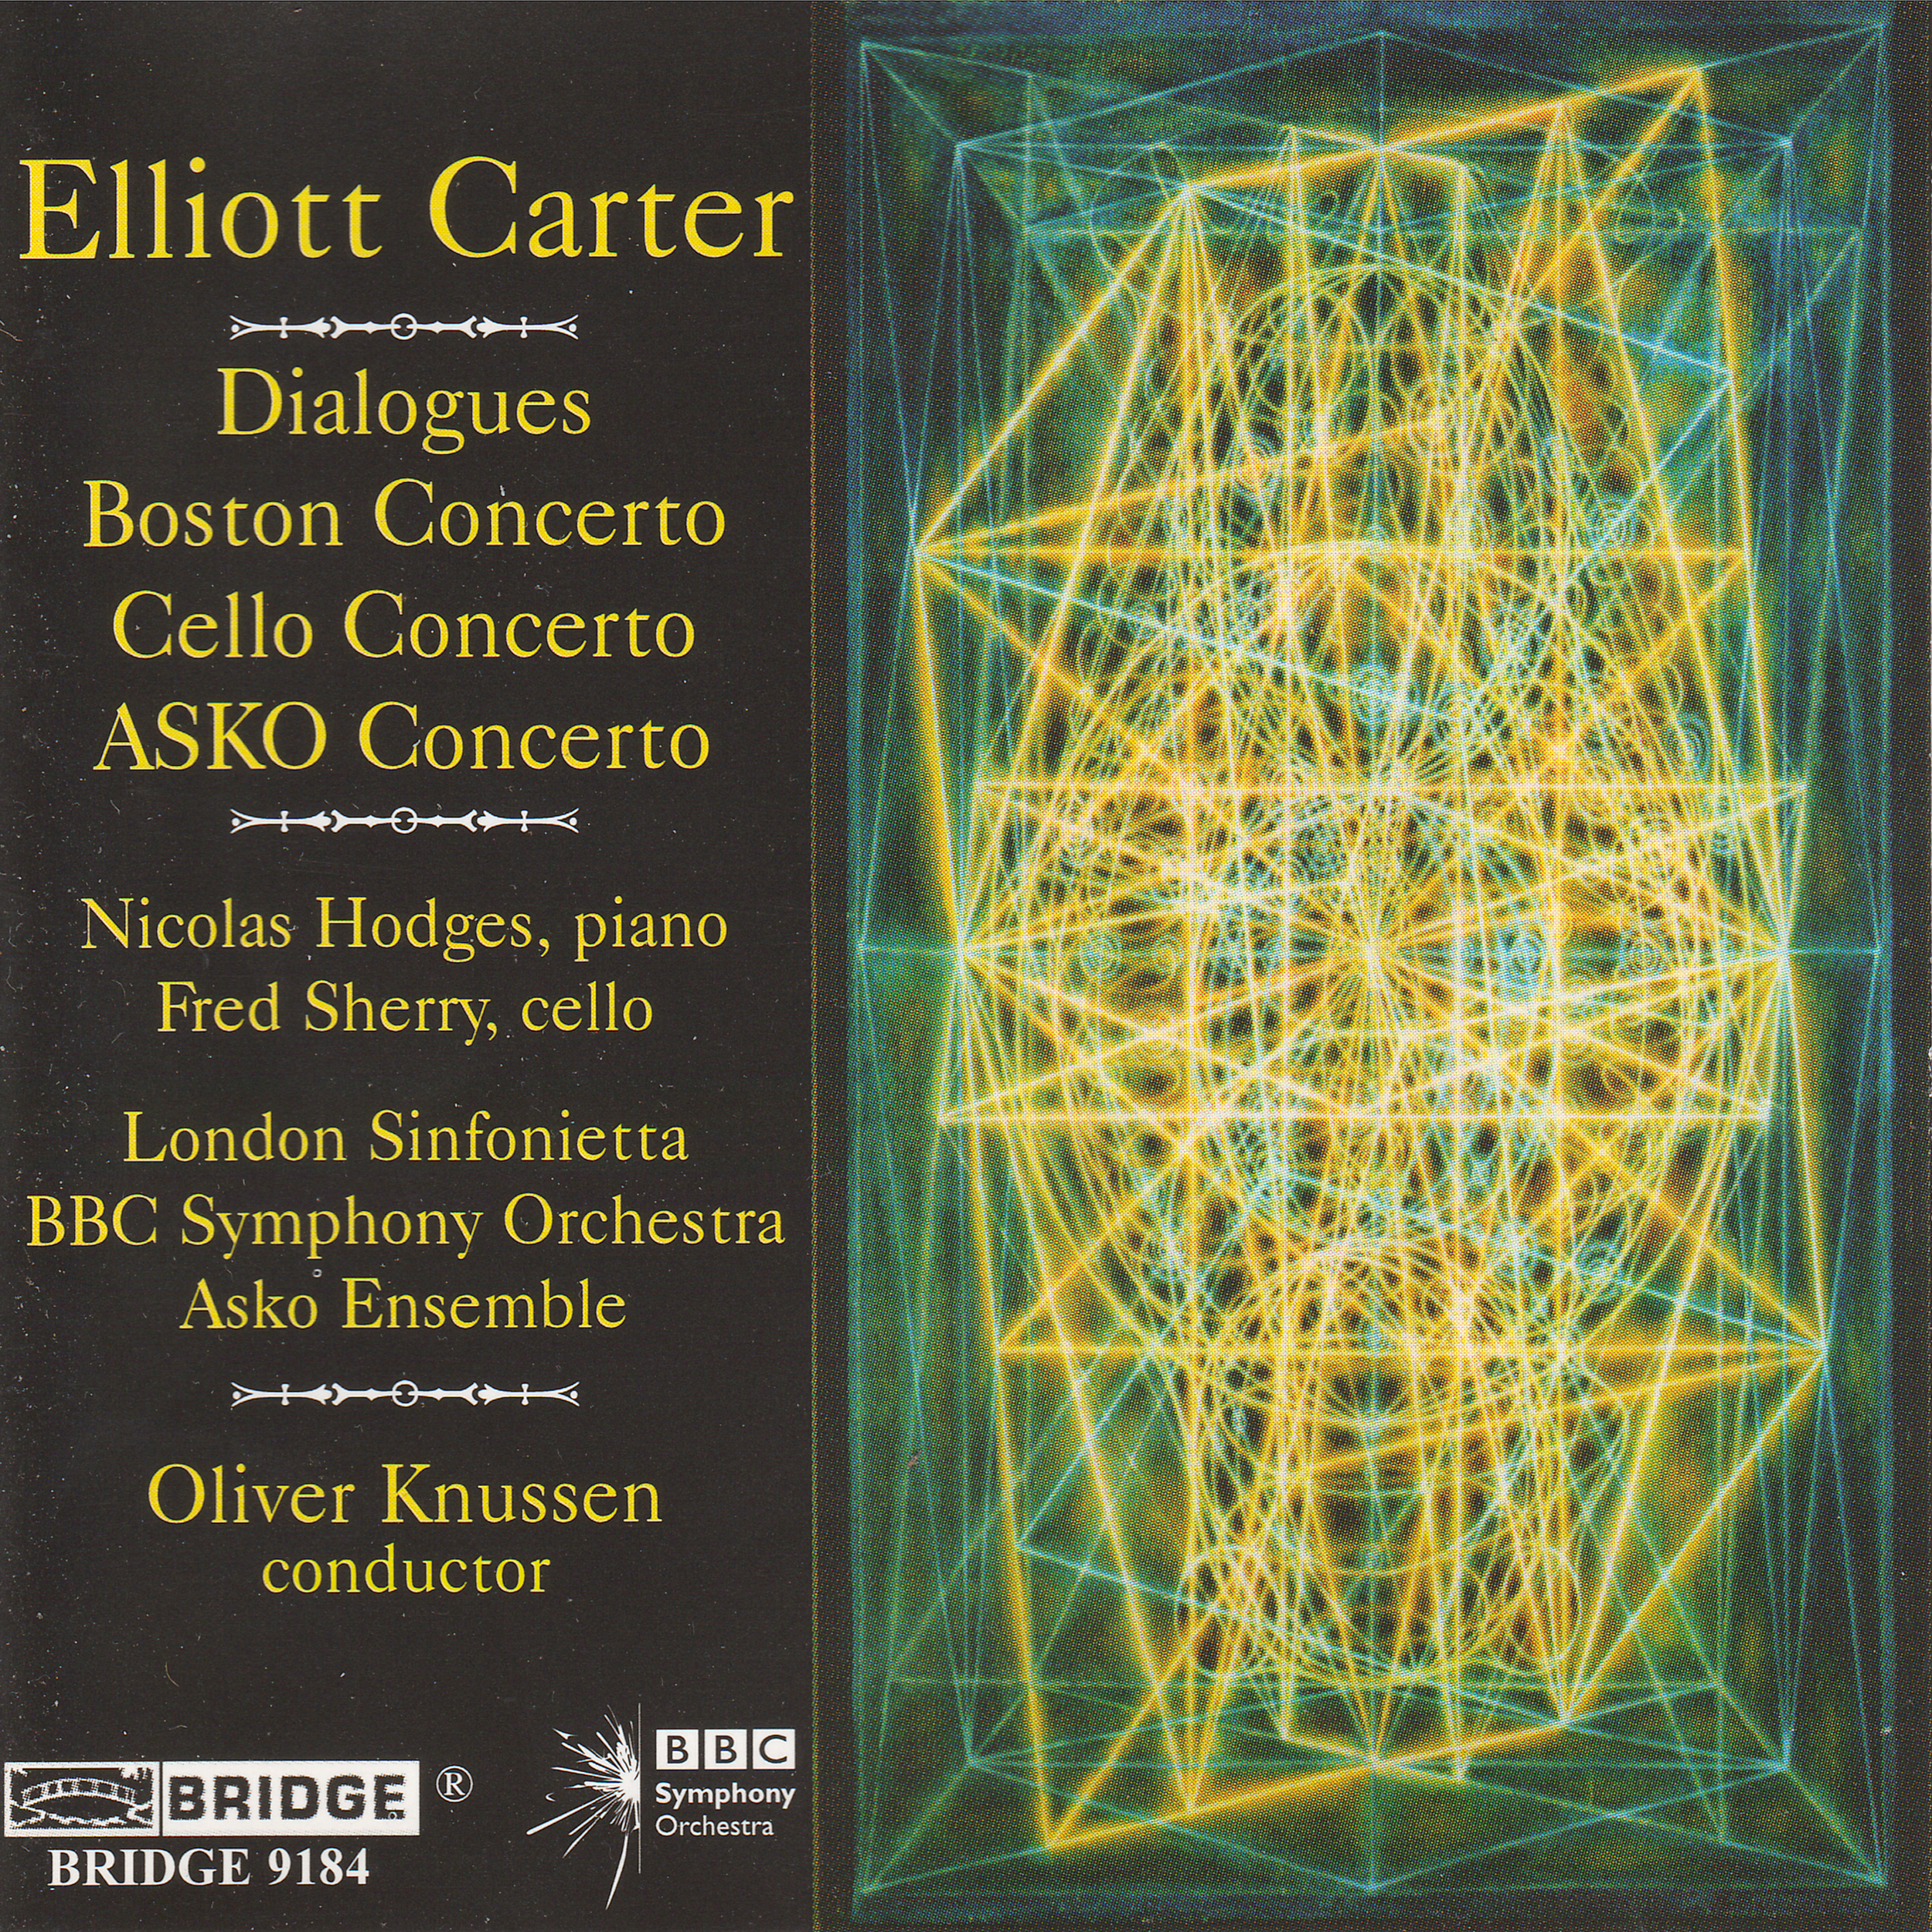 elliott carter orch works.jpg